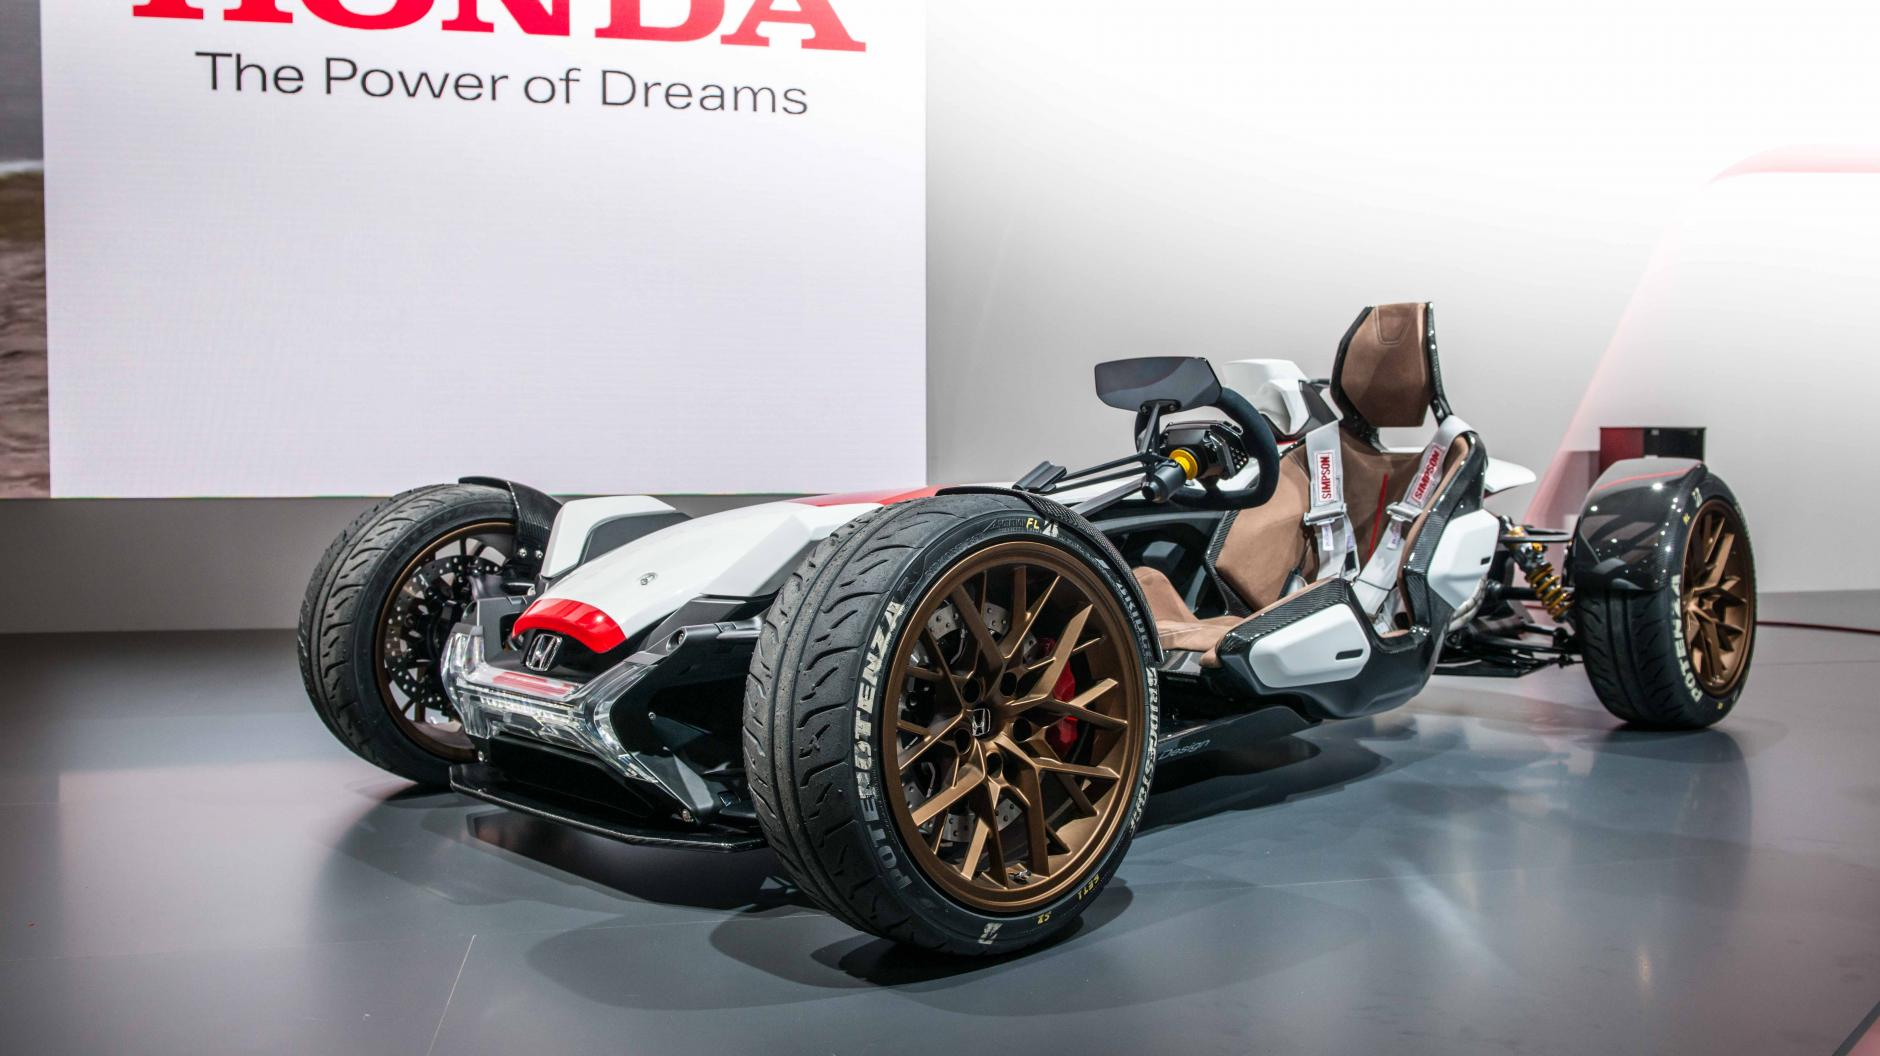 """Honda Project 2&4: """"There will be a next step,"""" says designer"""